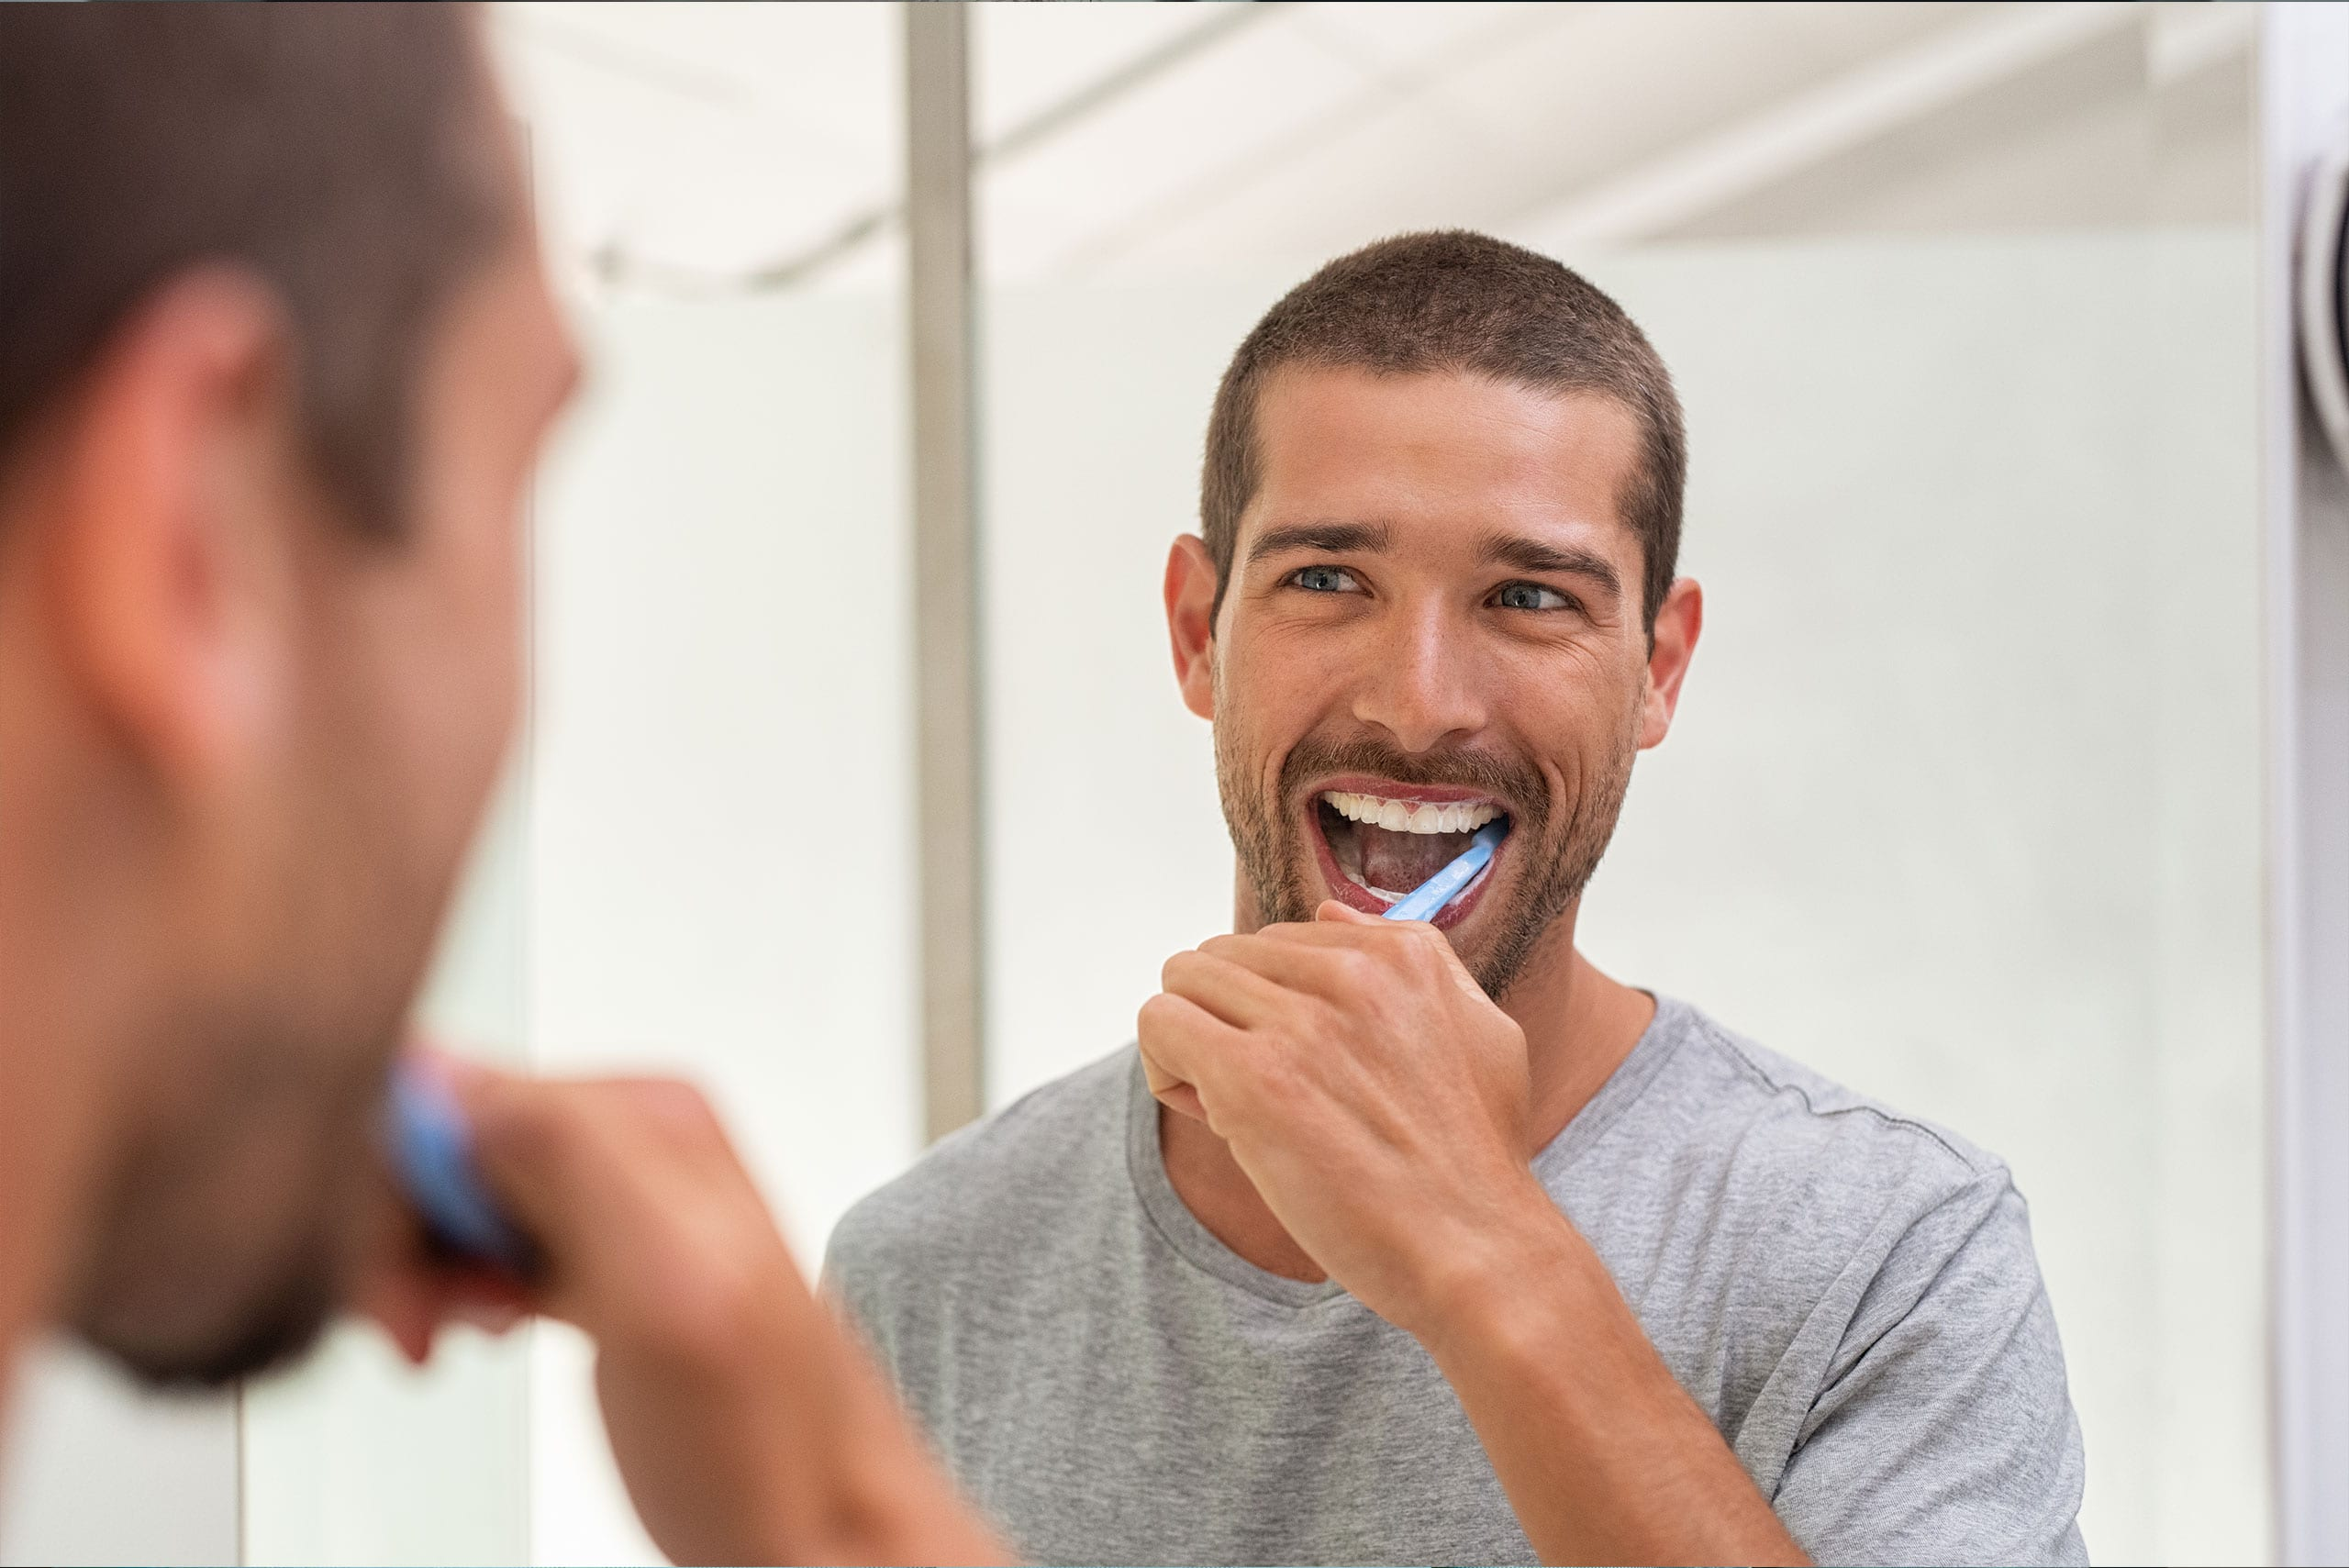 Teeth Whitening - Rockford Cosmetic Dentist - Maintain Your Smile